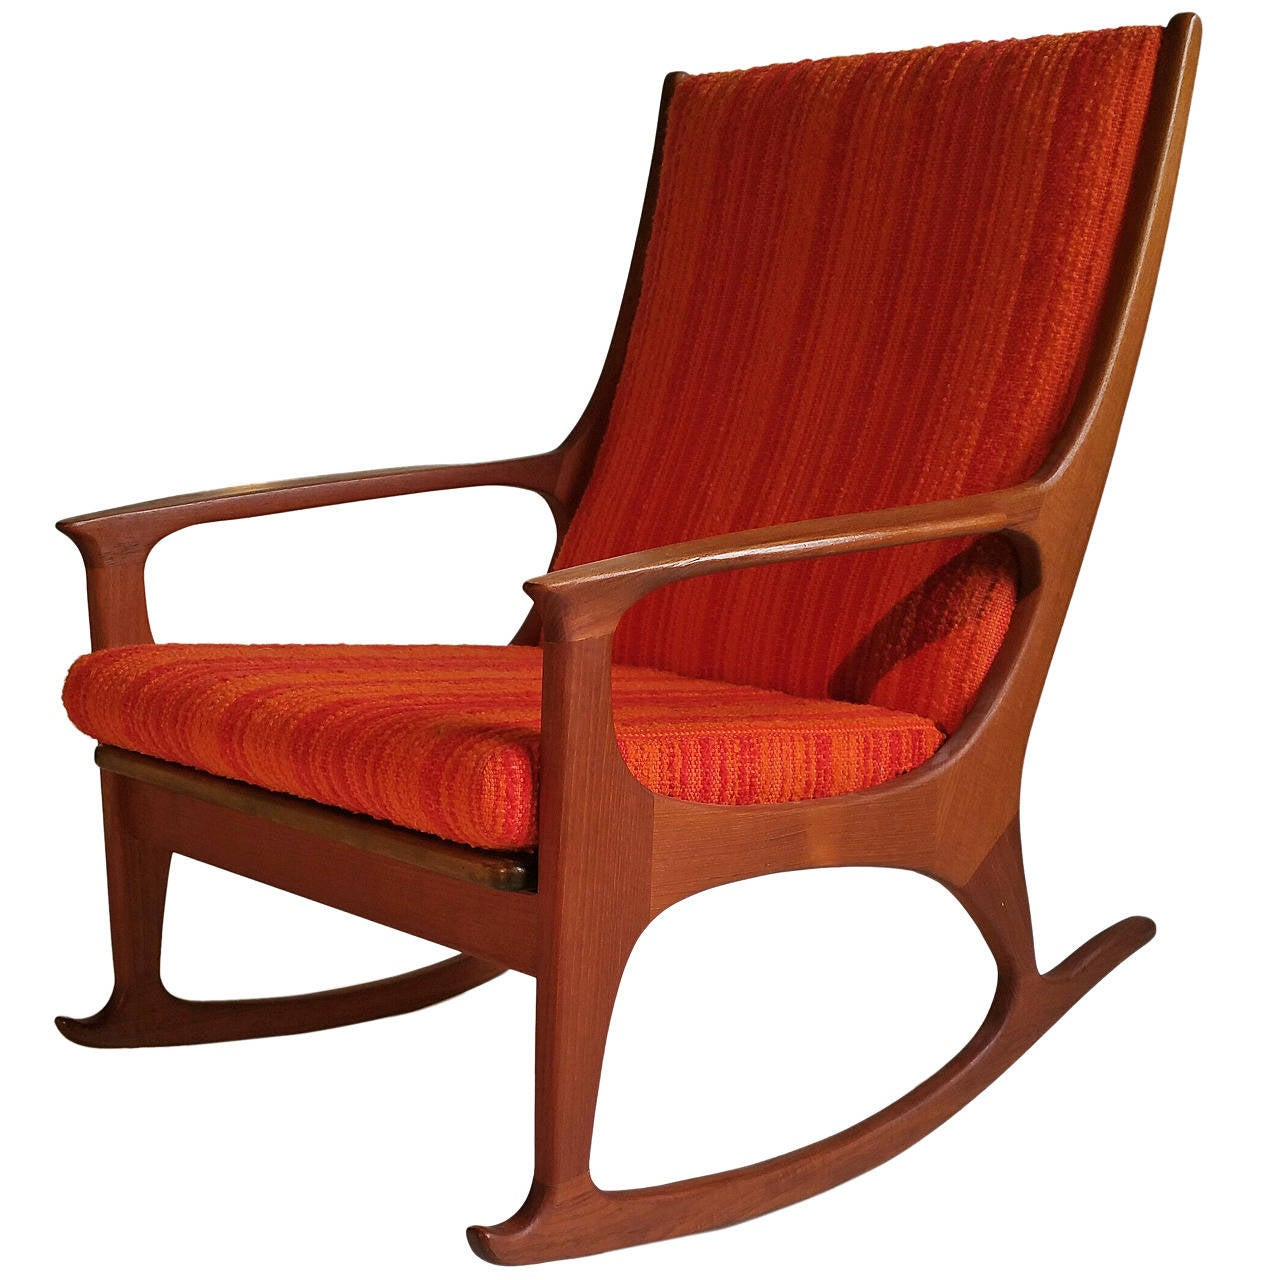 Midcentury danish modern teak rocking chair at 1stdibs for Rocking chair